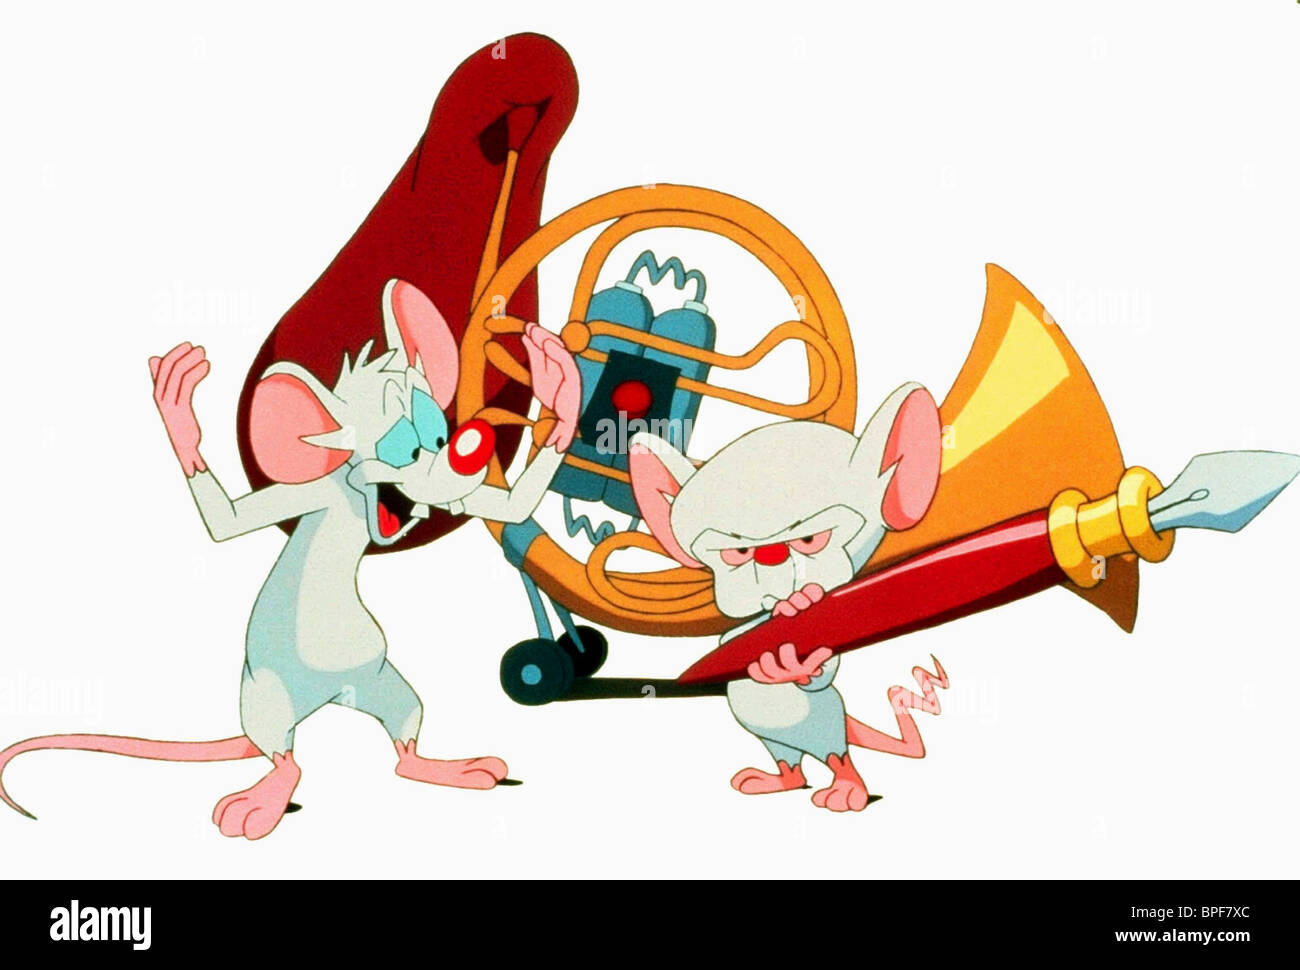 PINKY & THE BRAIN PINKY AND THE BRAIN (1995) - Stock Image